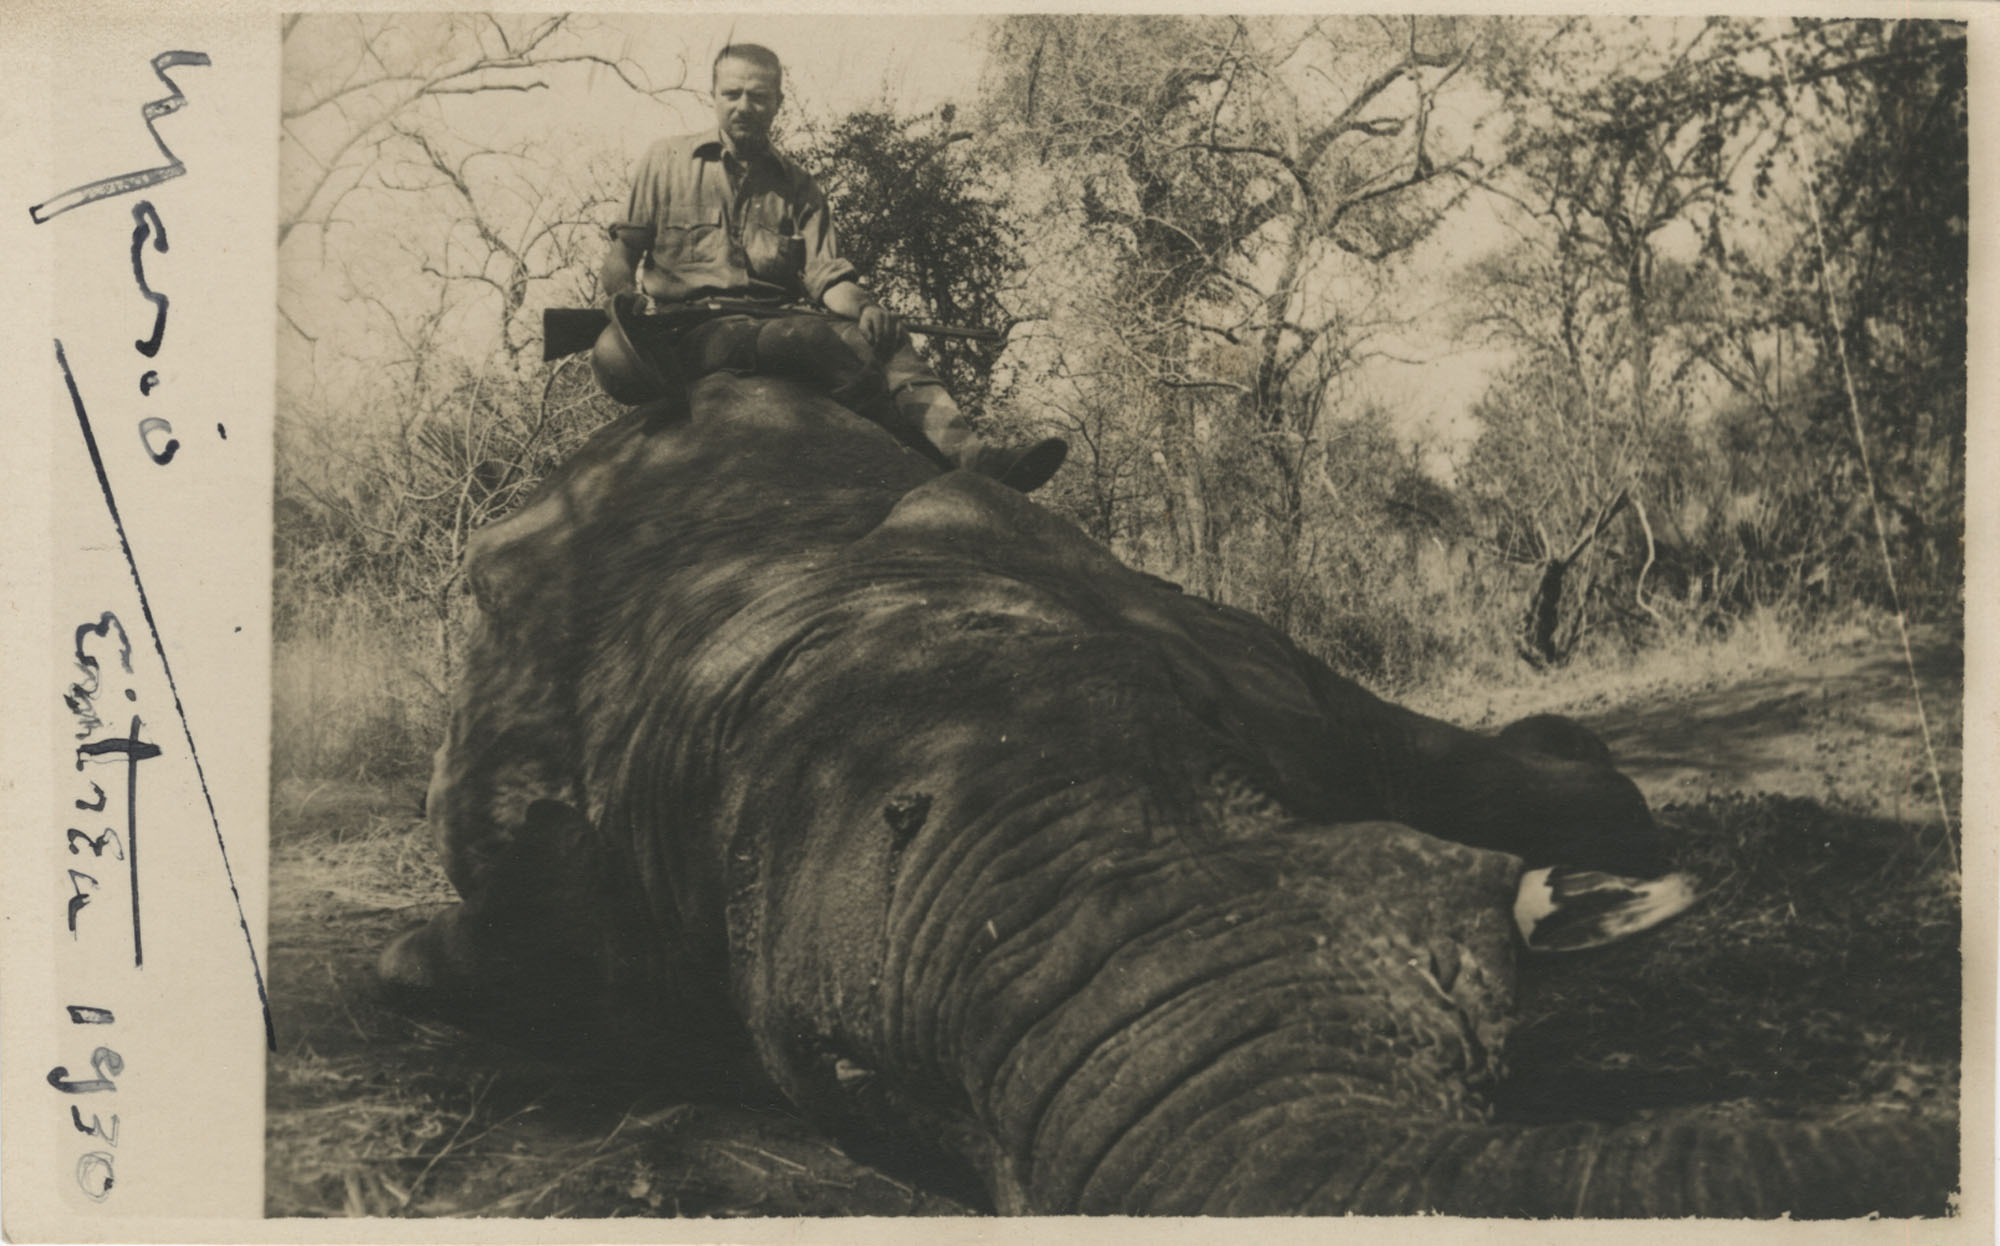 Mario Pansa atop an elephant in Abyssinia, Photograph 1